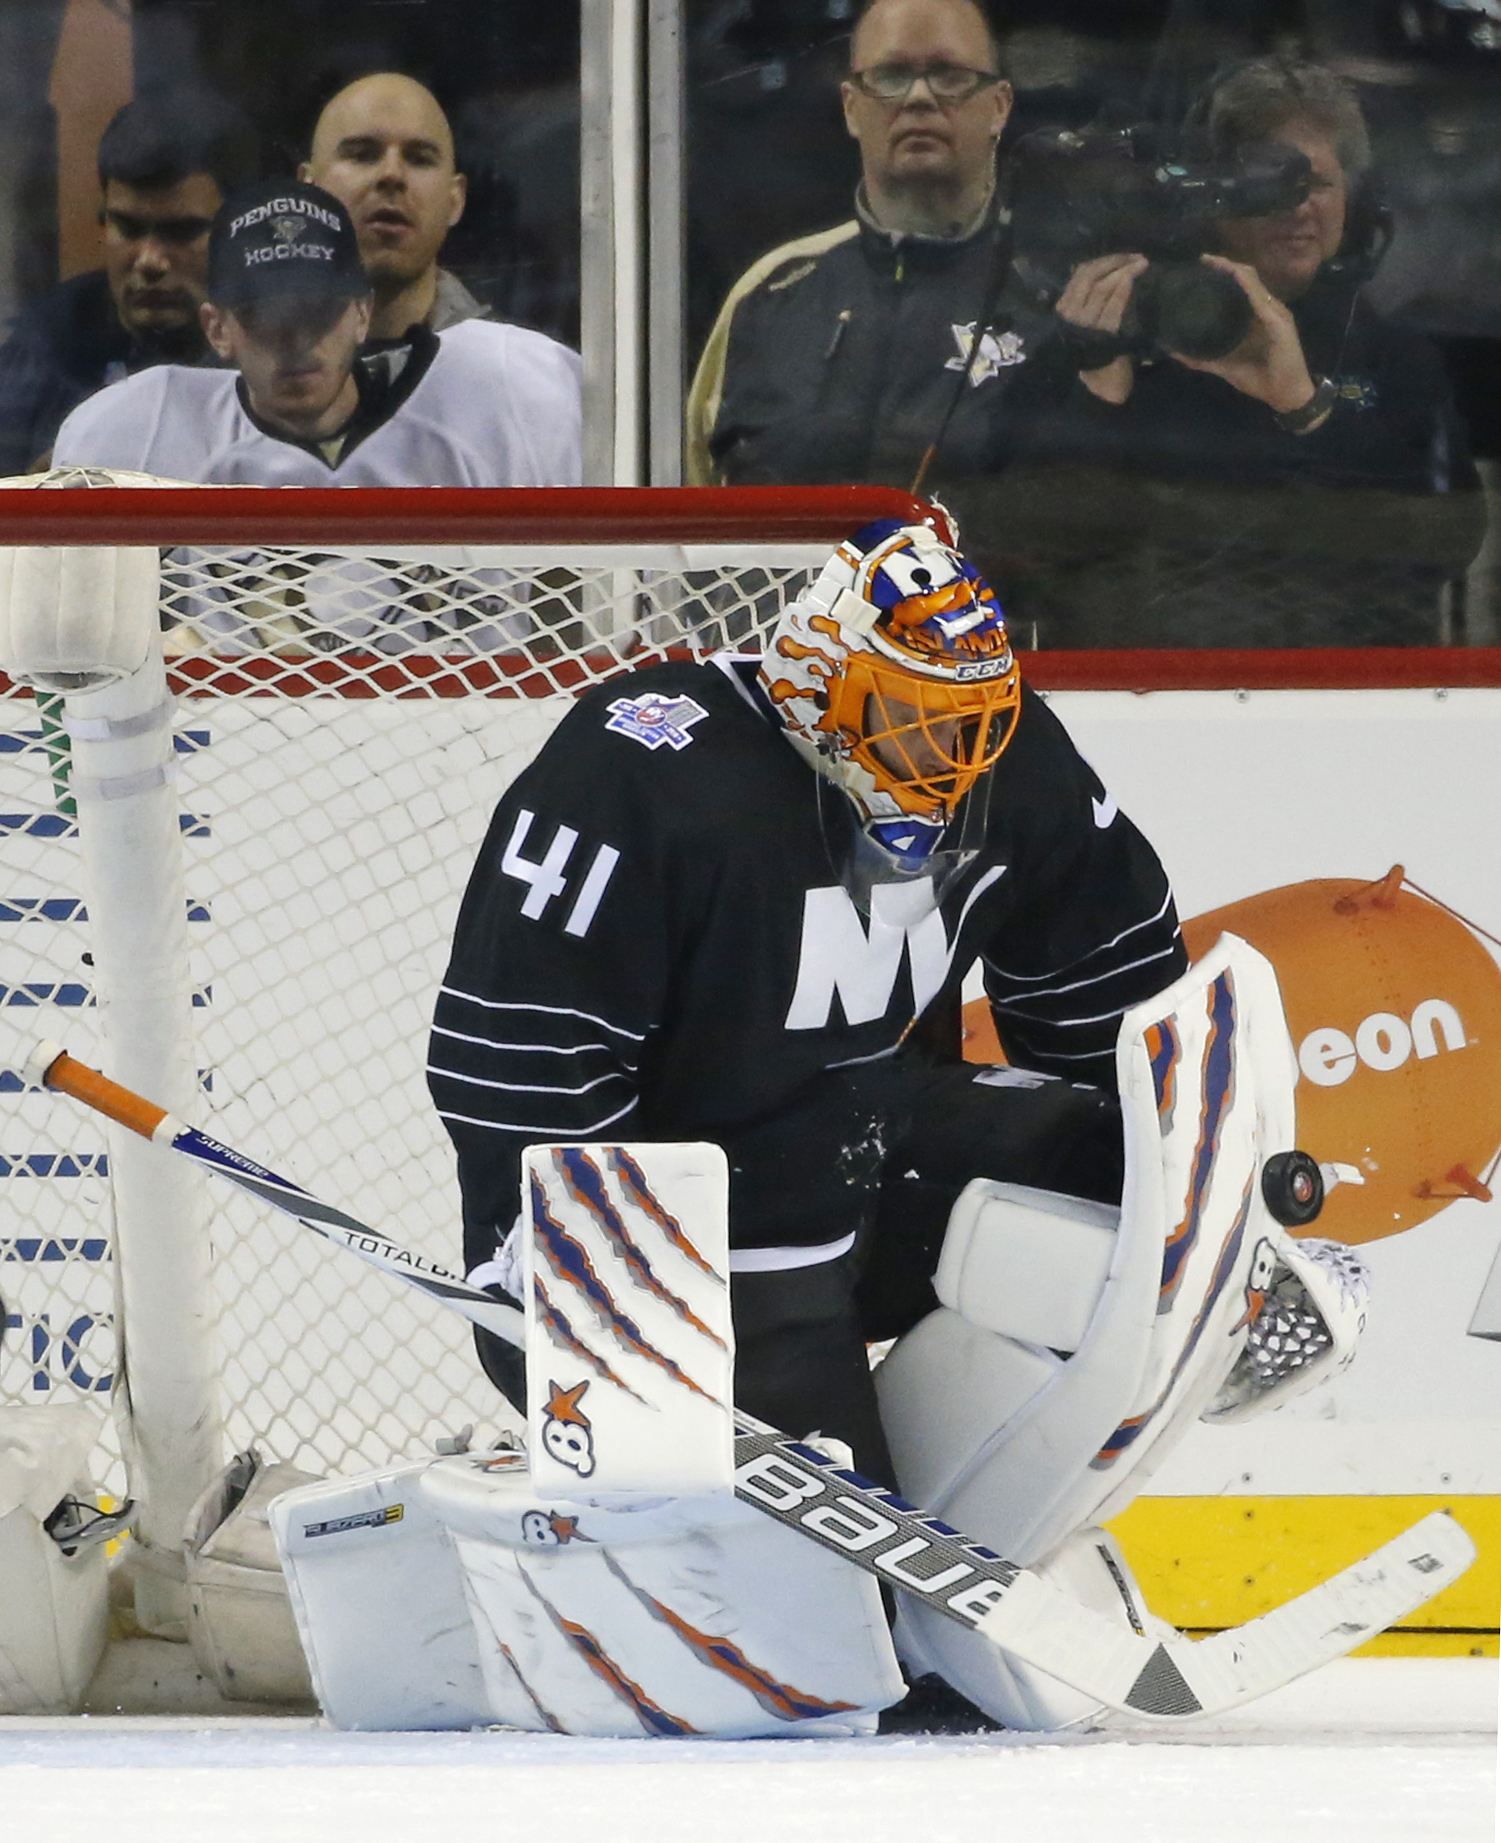 New York Islanders goalie Jaroslav Halak makes a save during the second period of an NHL hockey game against the Pittsburgh Penguins in New York, Tuesday, March 8, 2016. (AP Photo/Kathy Willens)